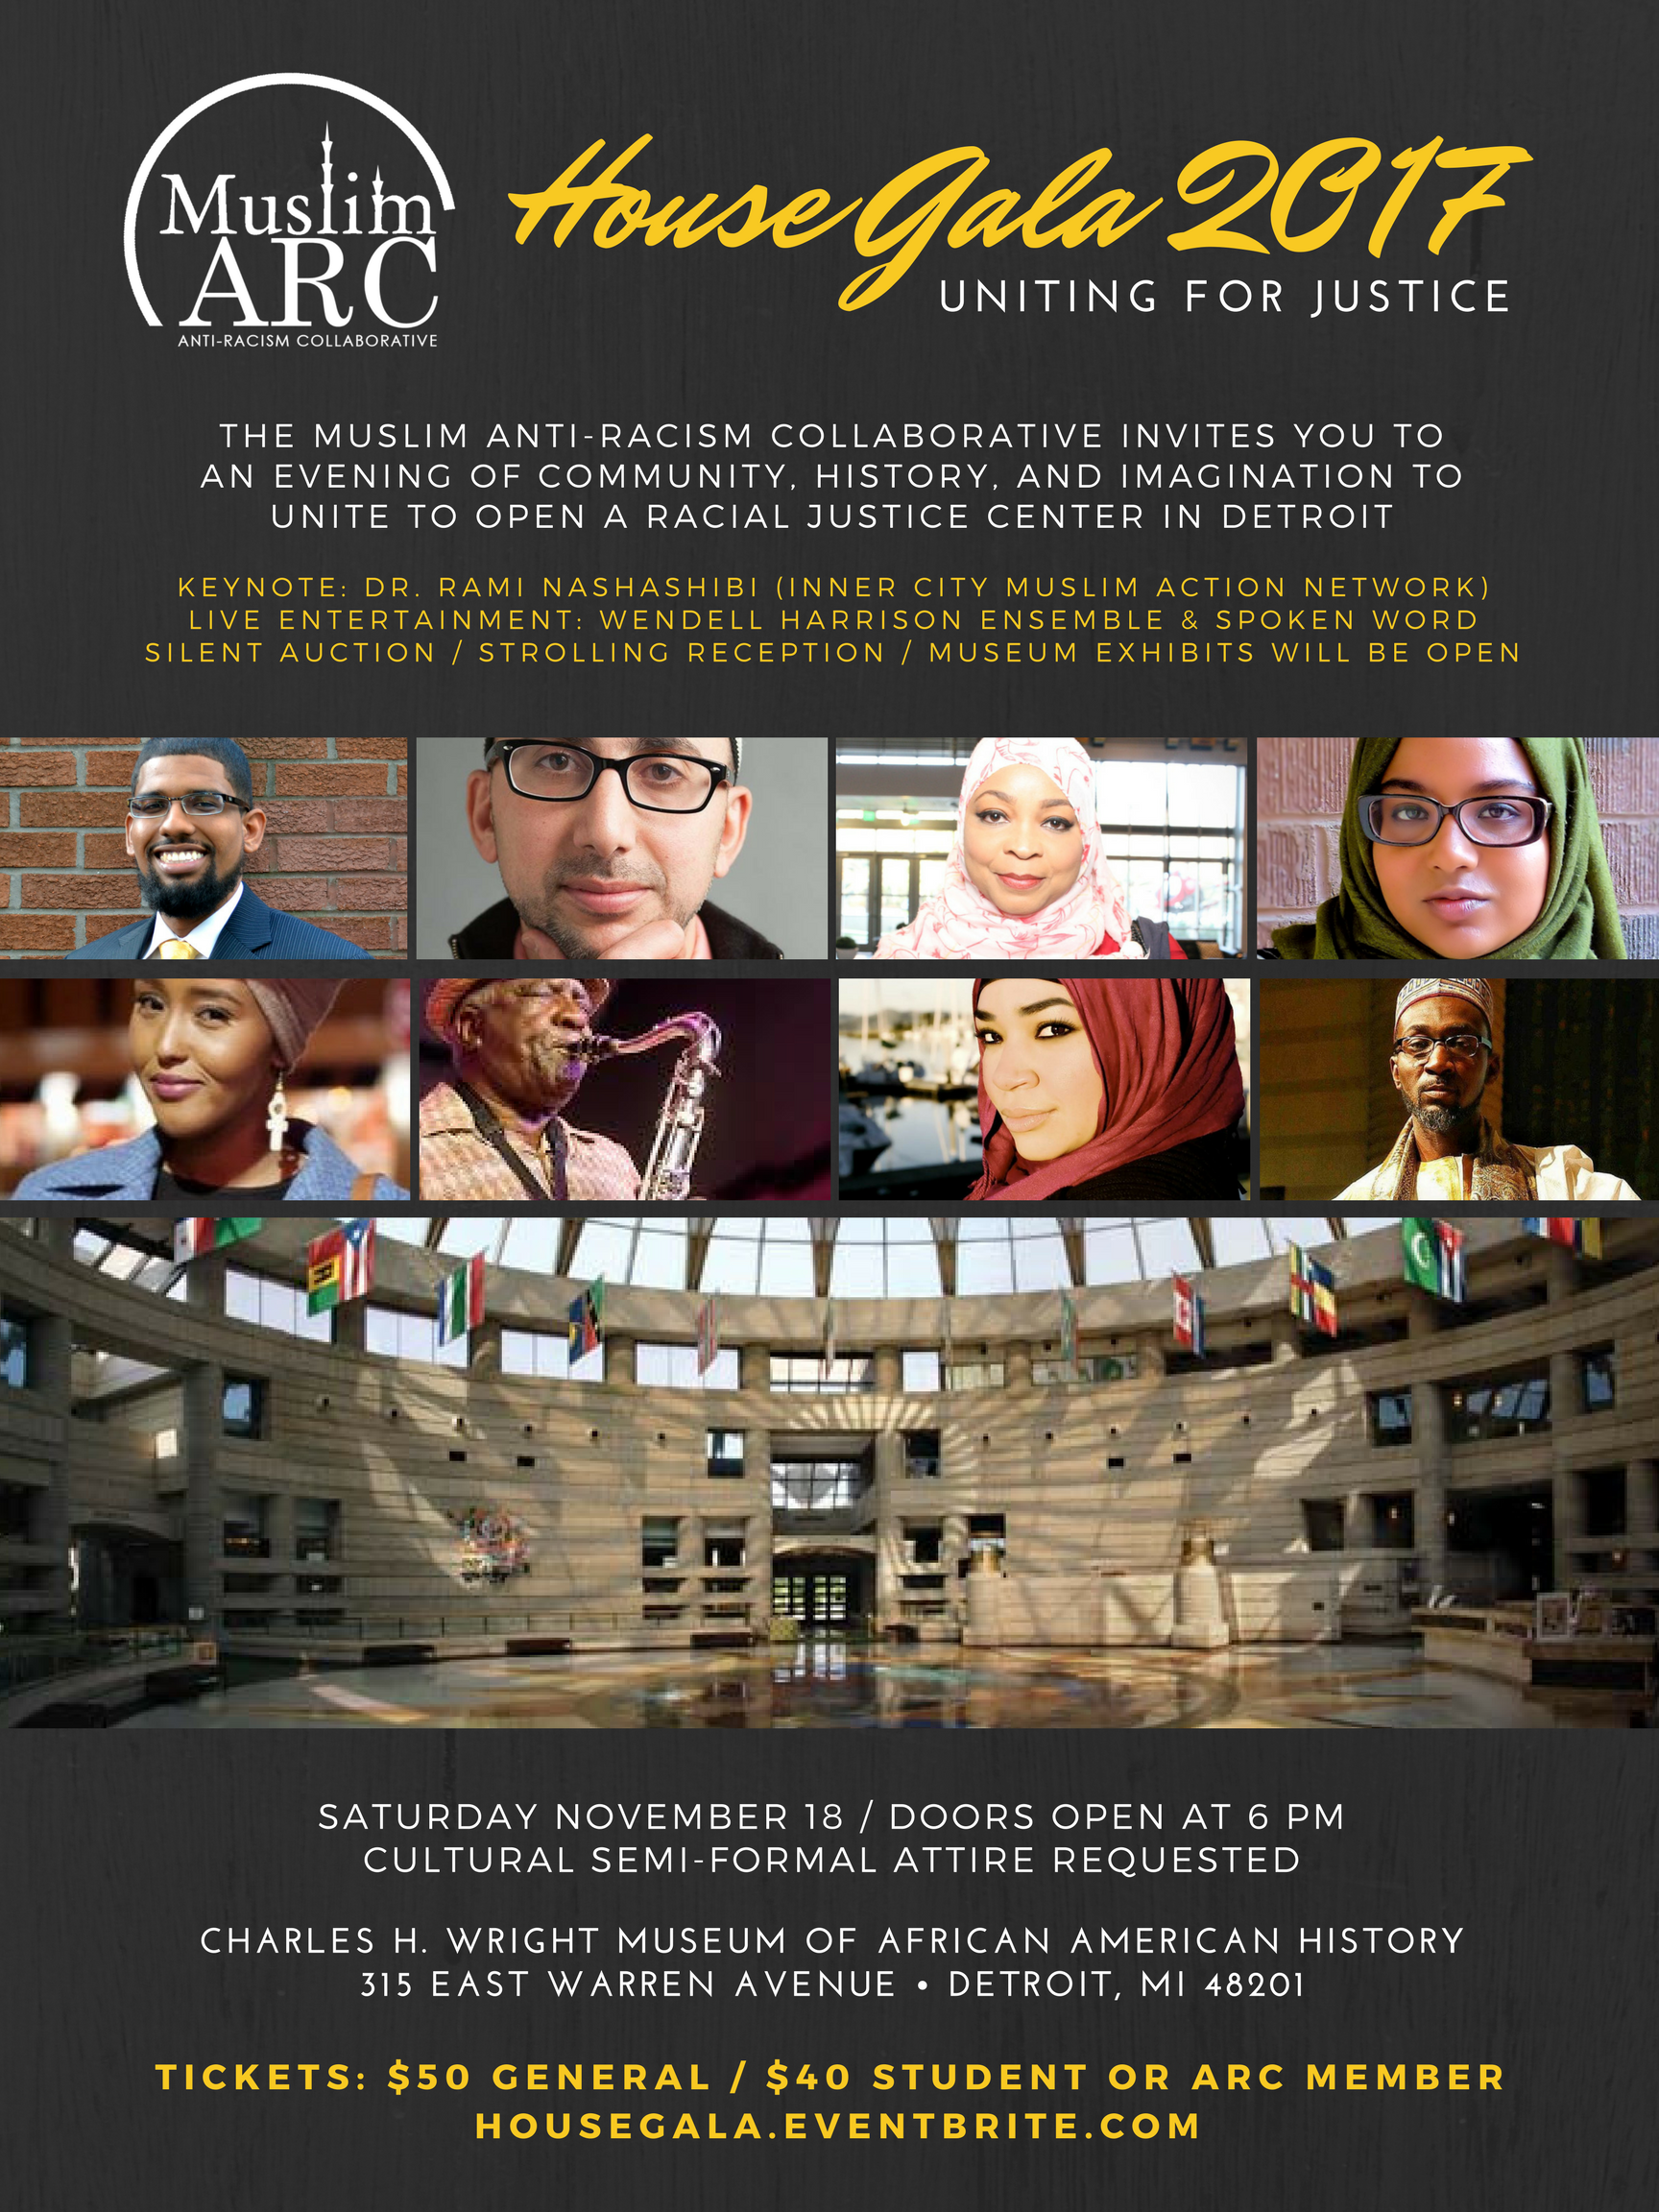 MuslimARC_House_Gala_2017_18x24.png